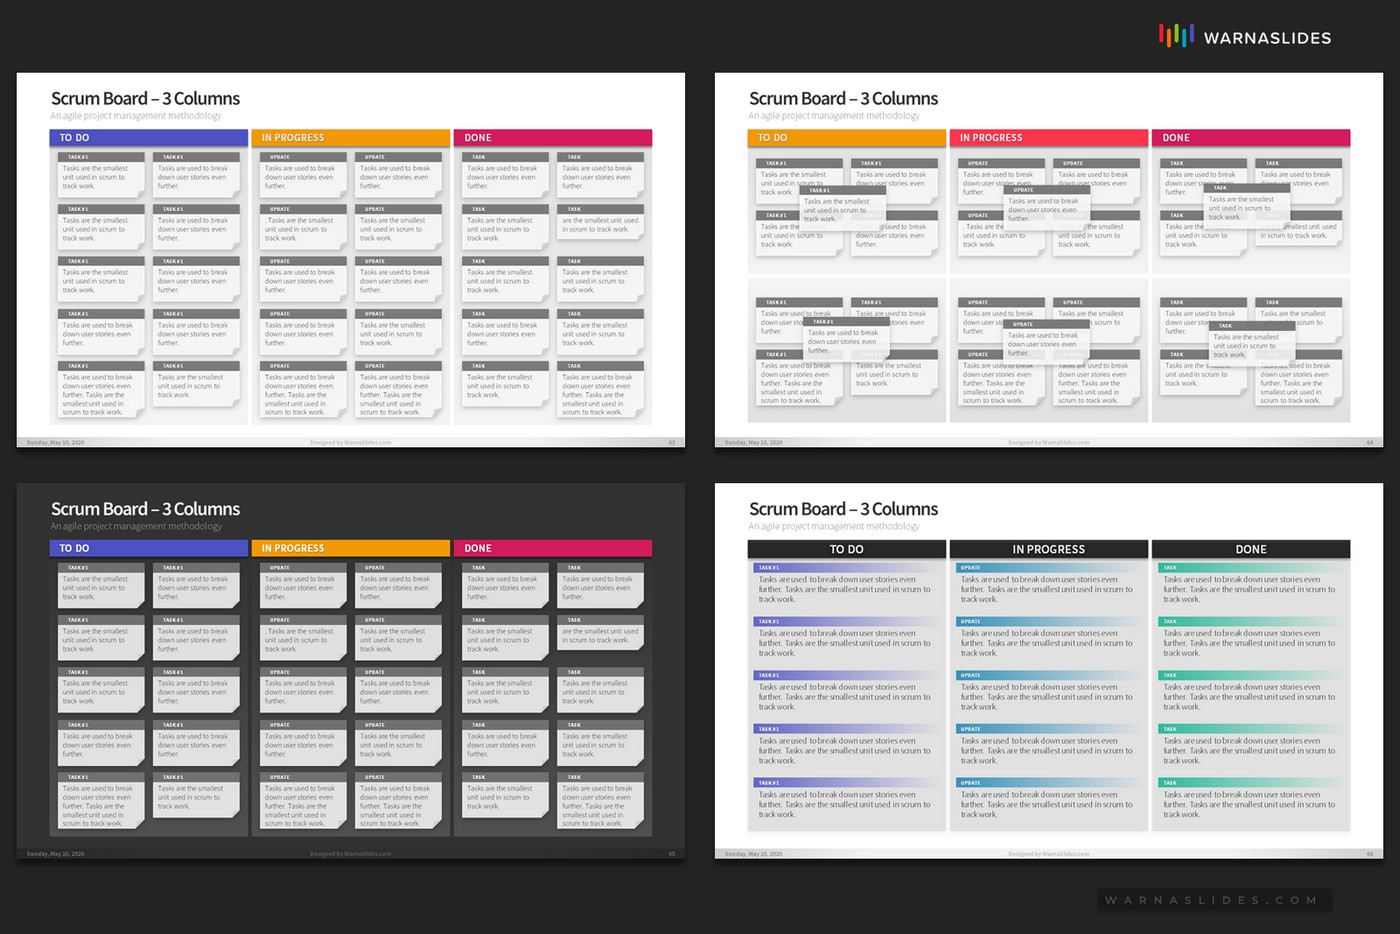 Agile-Scrum-Framework-Scrum-Process-Diagram-PowerPoint-Template-for-Business-Pitch-Deck-Professional-Creative-PowerPoint-Icons-019